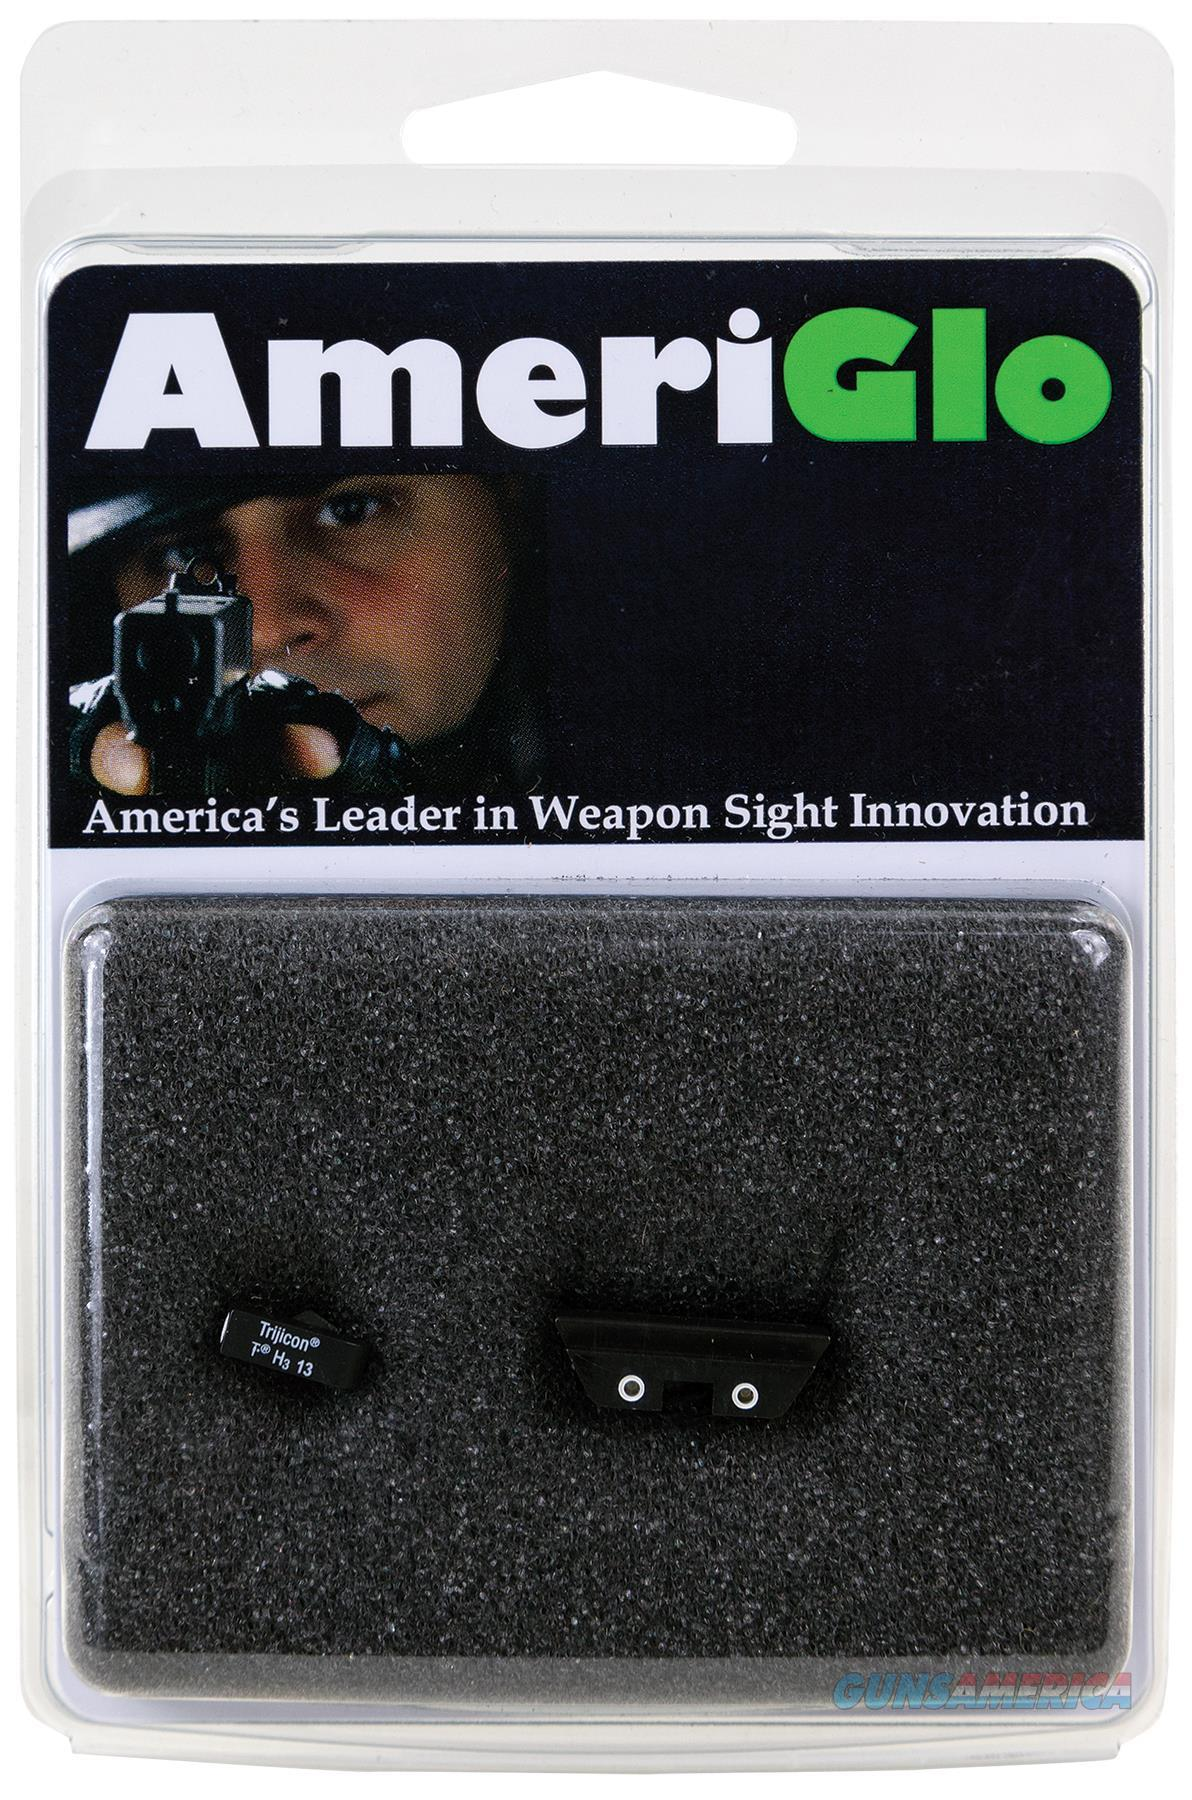 Ameriglo Gl121 Classic 3 Dot Night Sight Glock 20/21/29/30/31/32/36/40/41 Green Tritium W/White Outline Yellow W/White Outline Black GL121  Non-Guns > Iron/Metal/Peep Sights